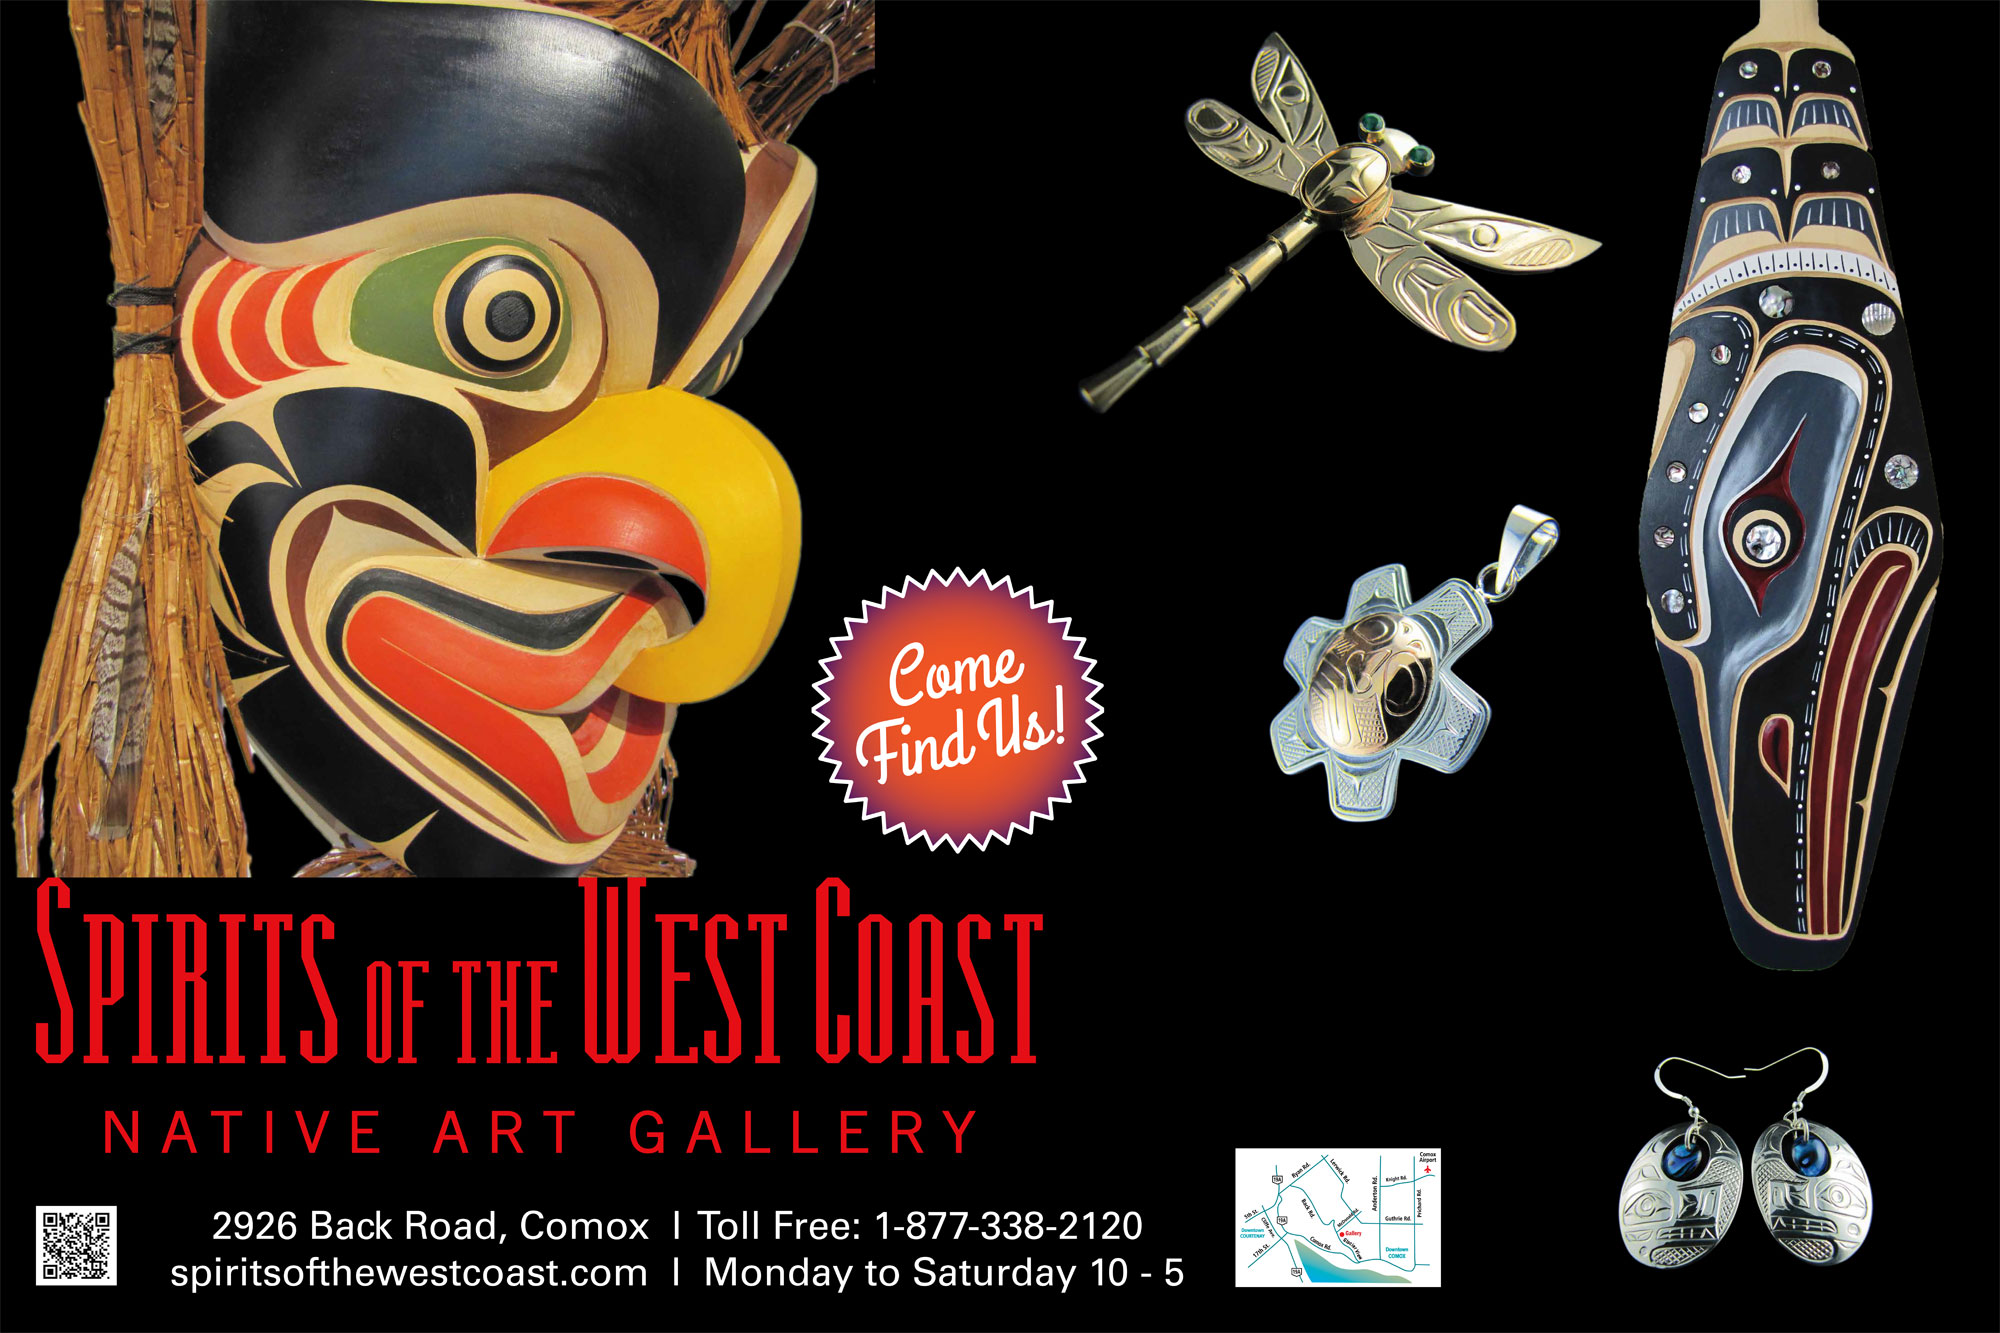 Spirits of the West Coast Native Art Gallery